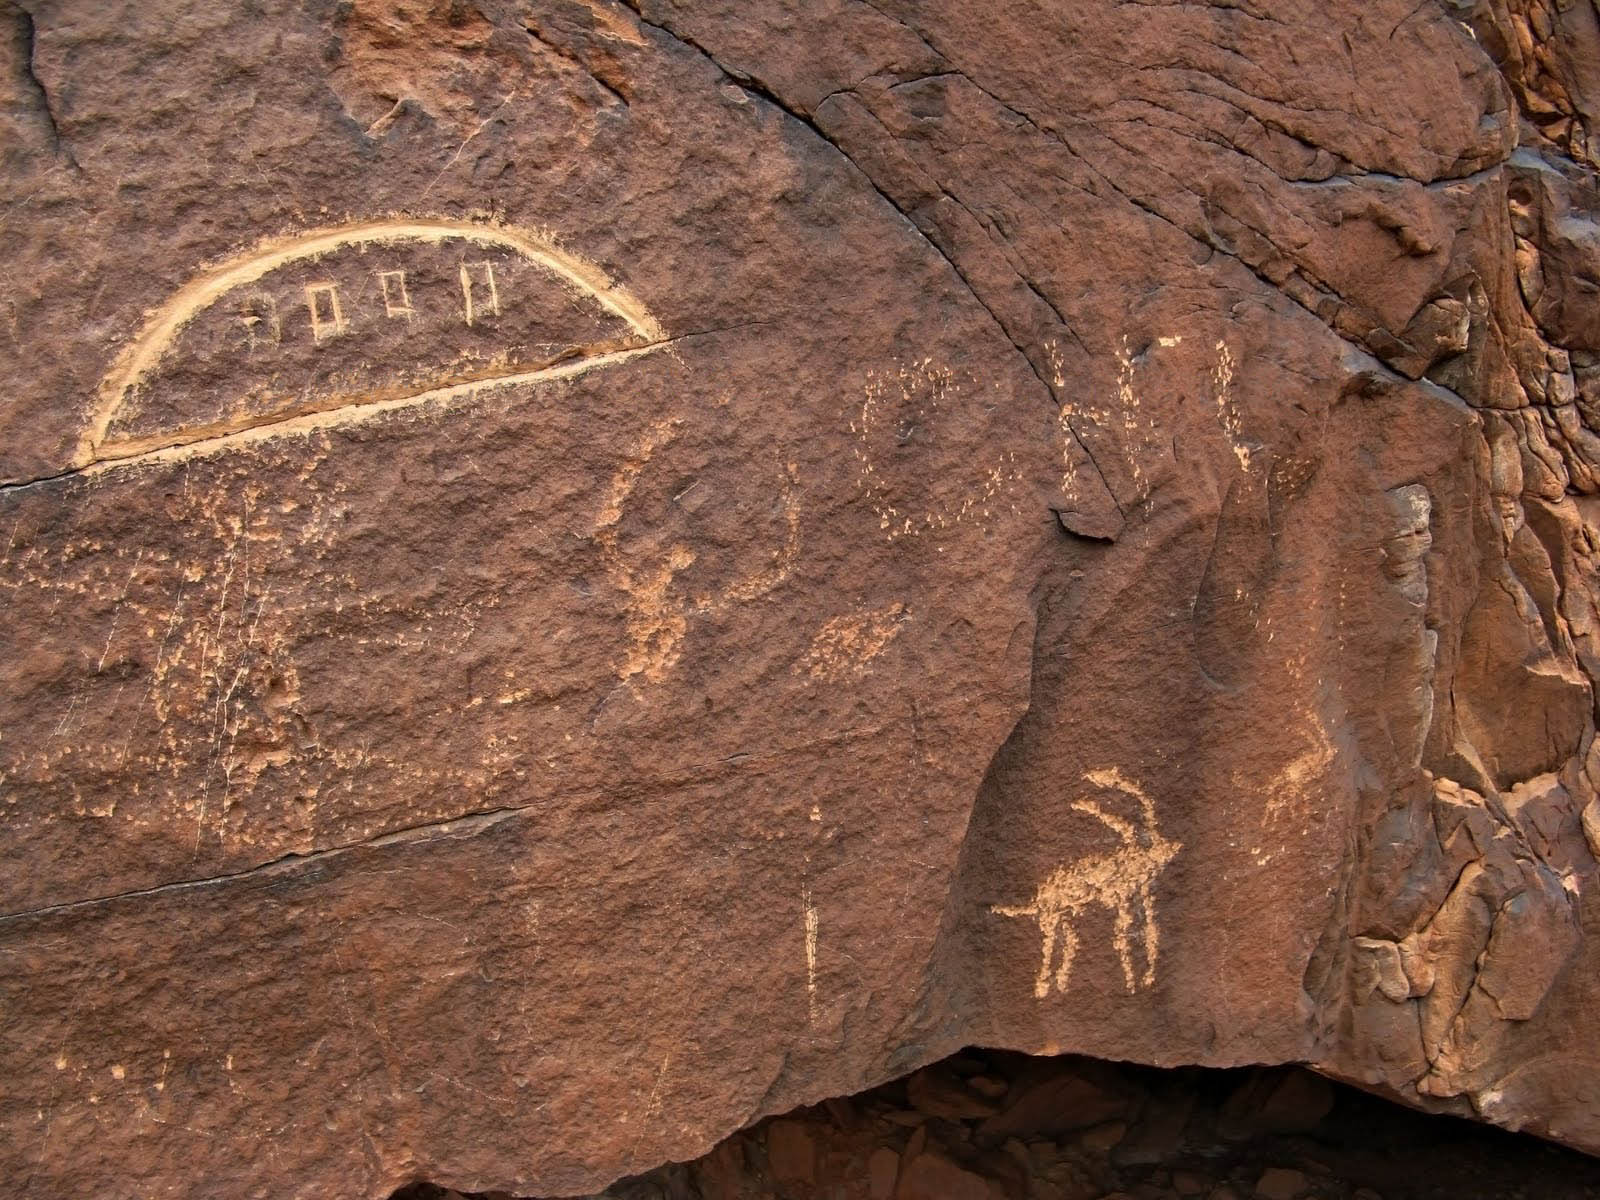 Most of these UFOs in ancient art are sacred or religious in nature This is quite ironic as a core belief of ancient astronaut theory in that there is nothing spiritual going on during these ancient extraterrestrial visitations